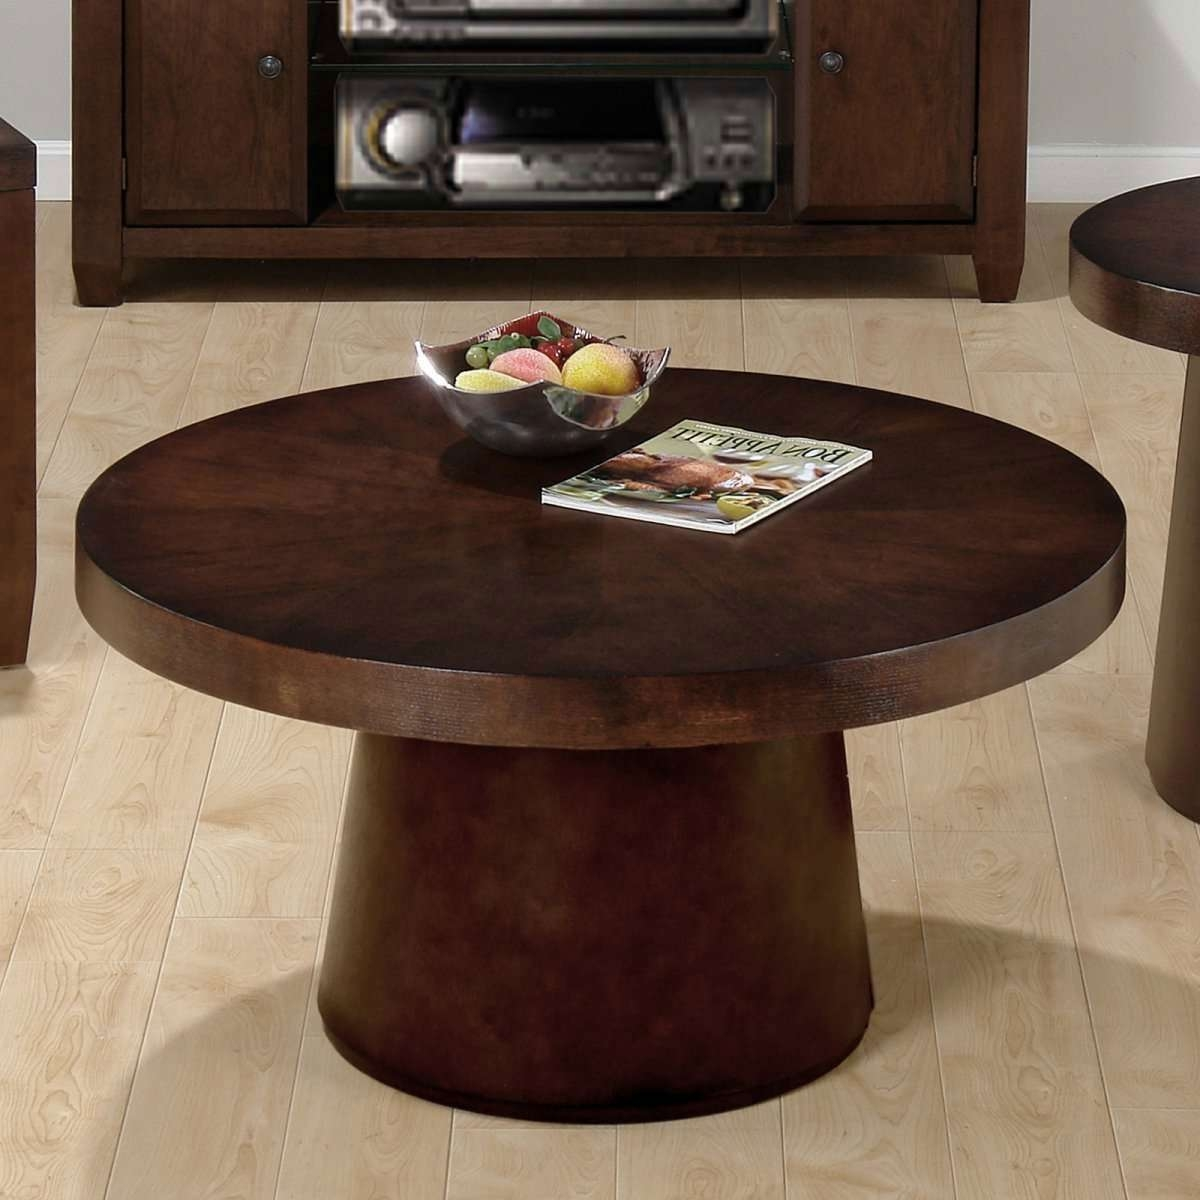 10 Best Small Round Coffee Tables For Round Coffee Tables Round Throughout Current Small Circle Coffee Tables (Gallery 1 of 20)